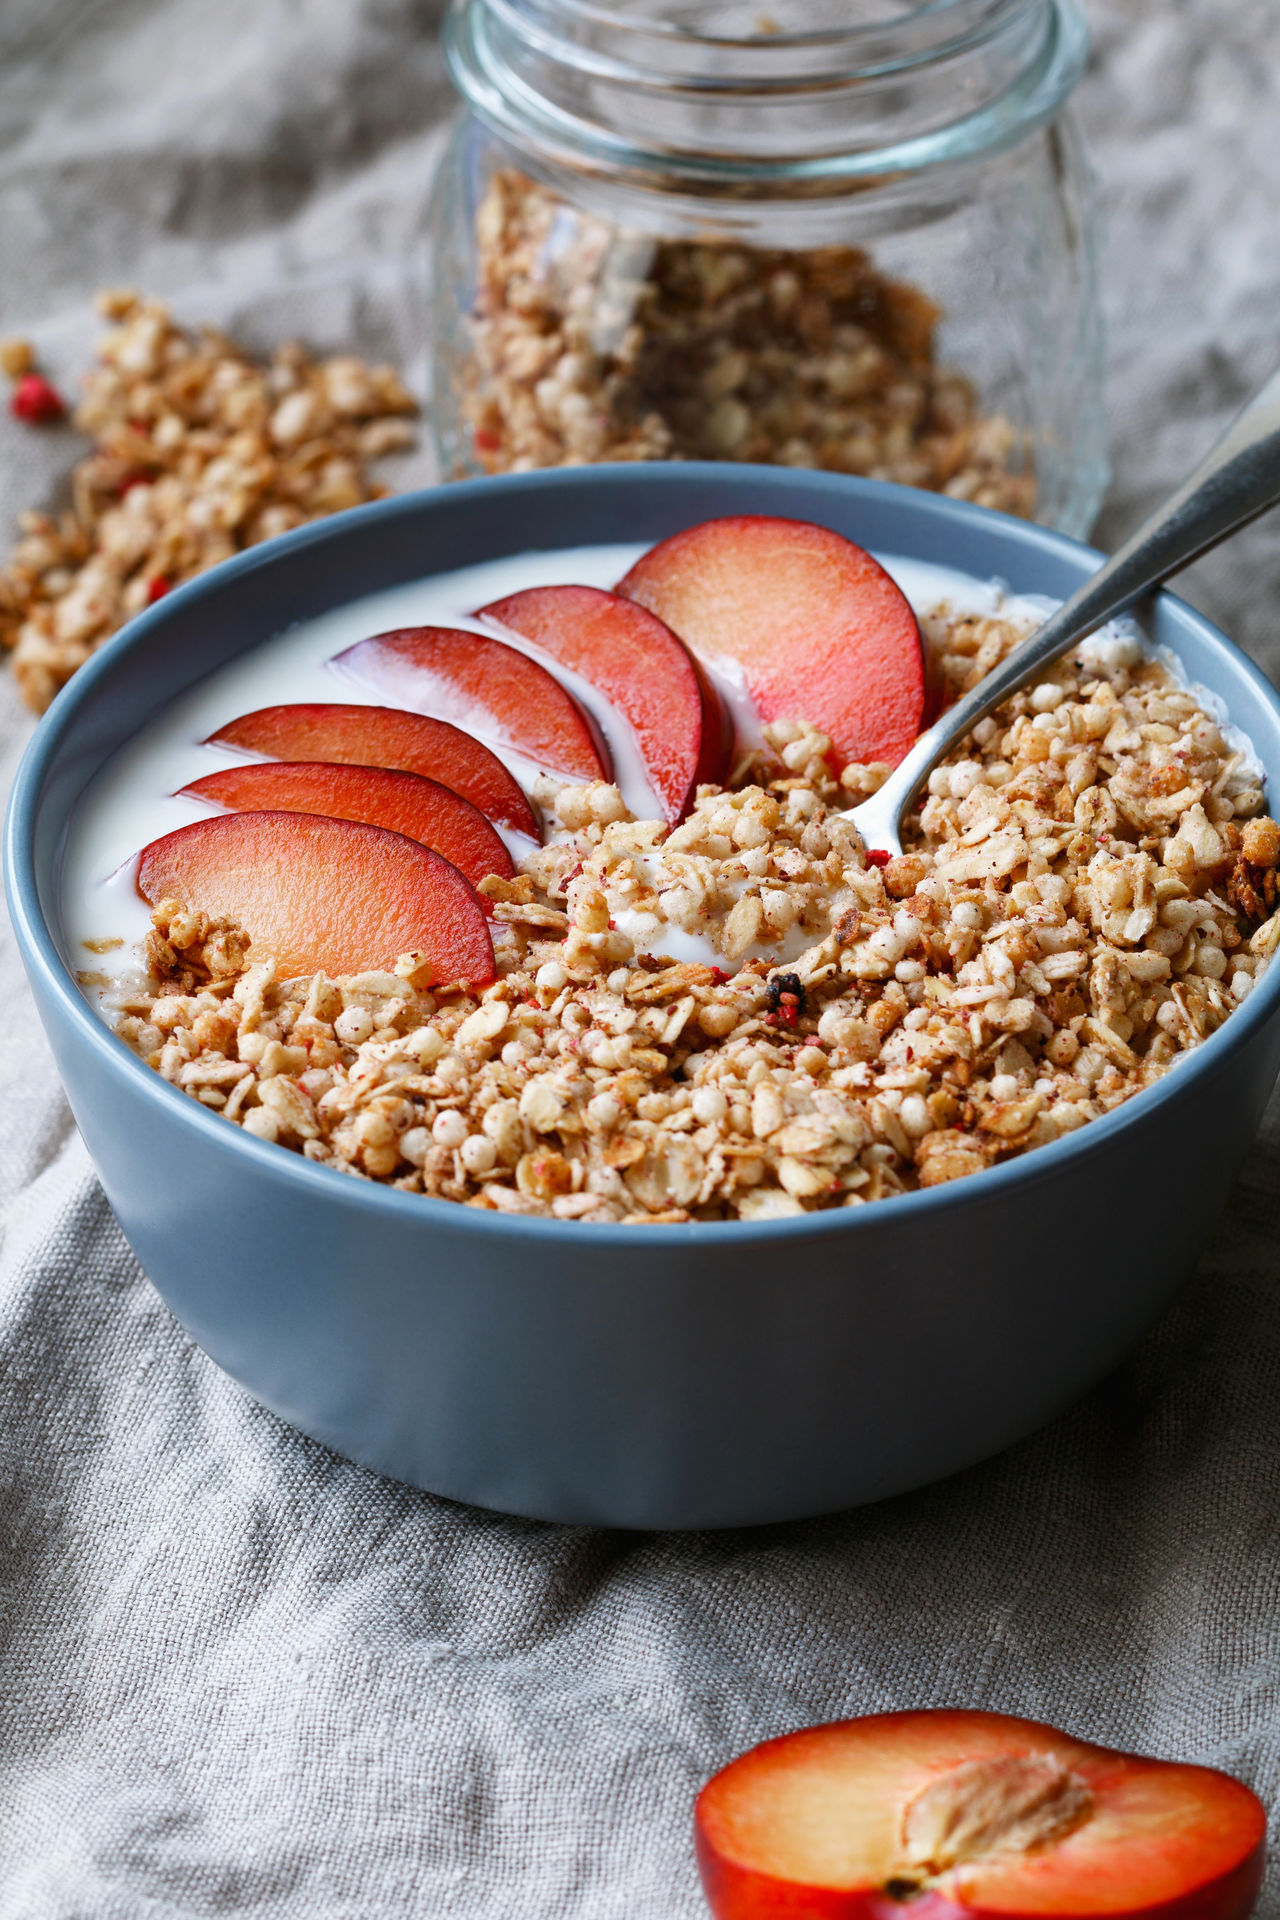 Bowl Breakfast Breakfast Cereal Fruit Granola Healthy Eating Morning Plum